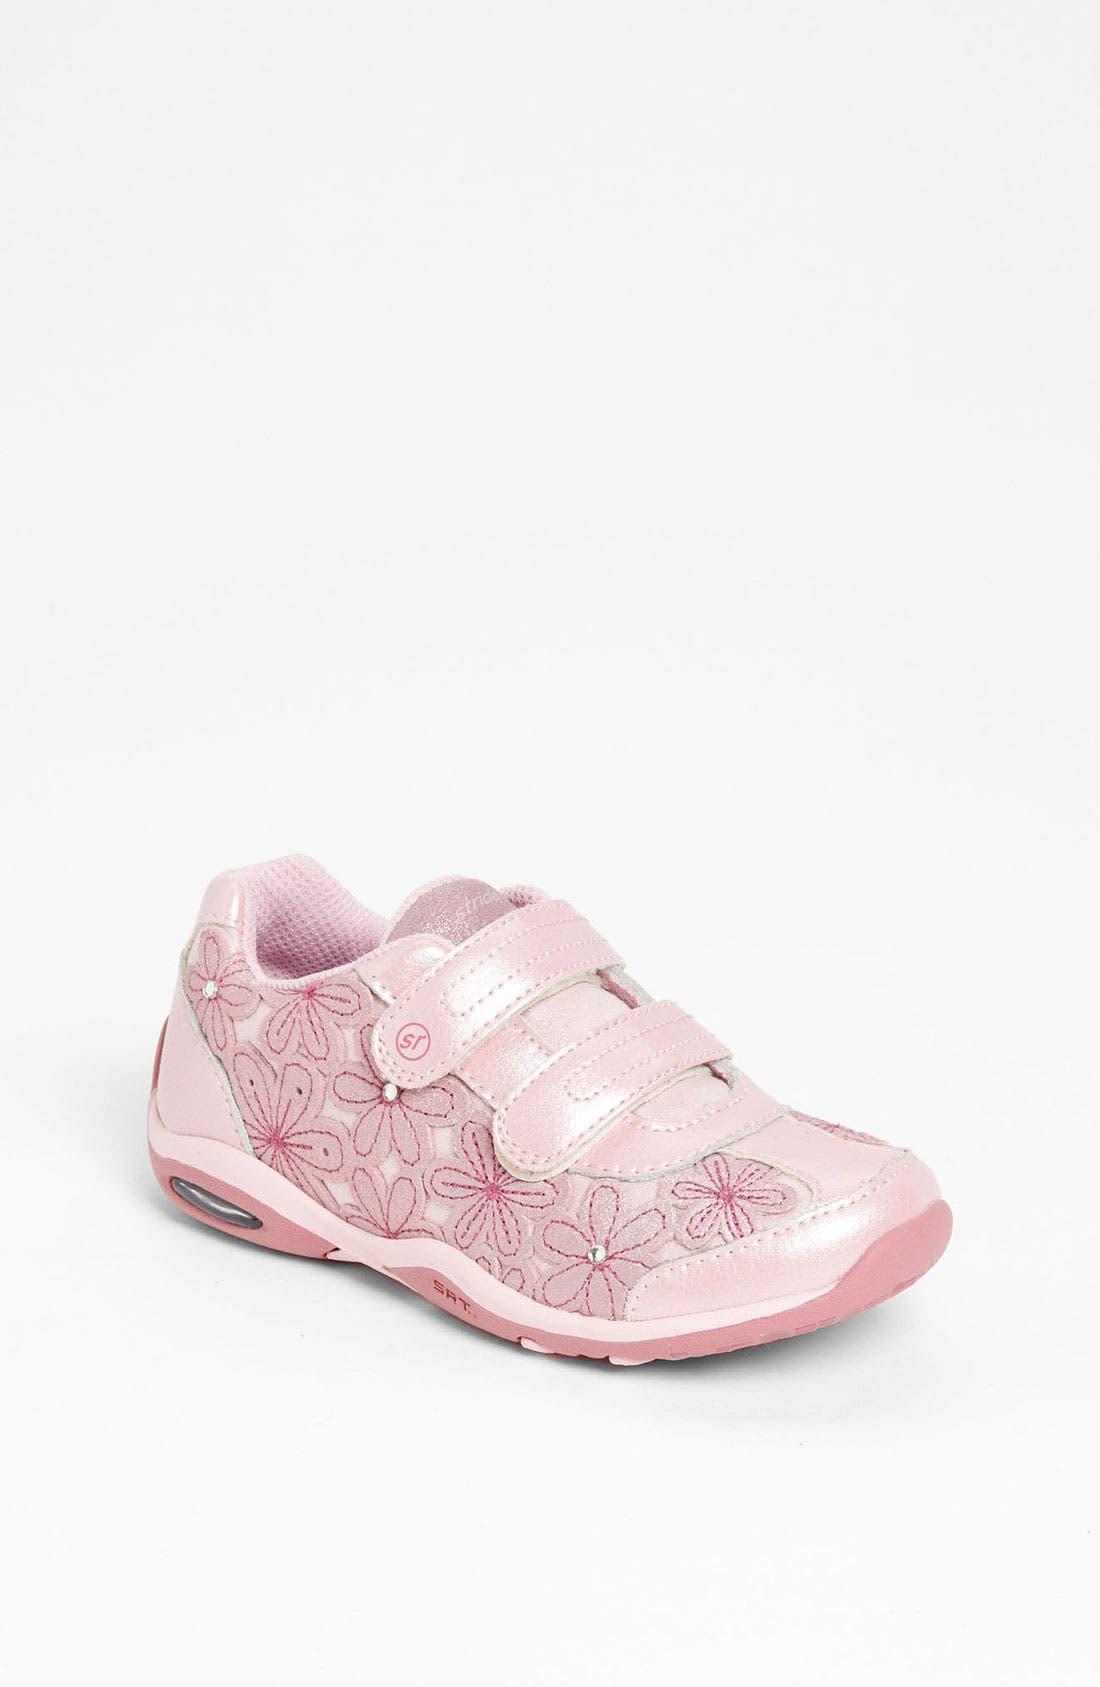 Main Image - Stride Rite 'Disney™ - Beatrice' Sneaker (Toddler & Little Kid)